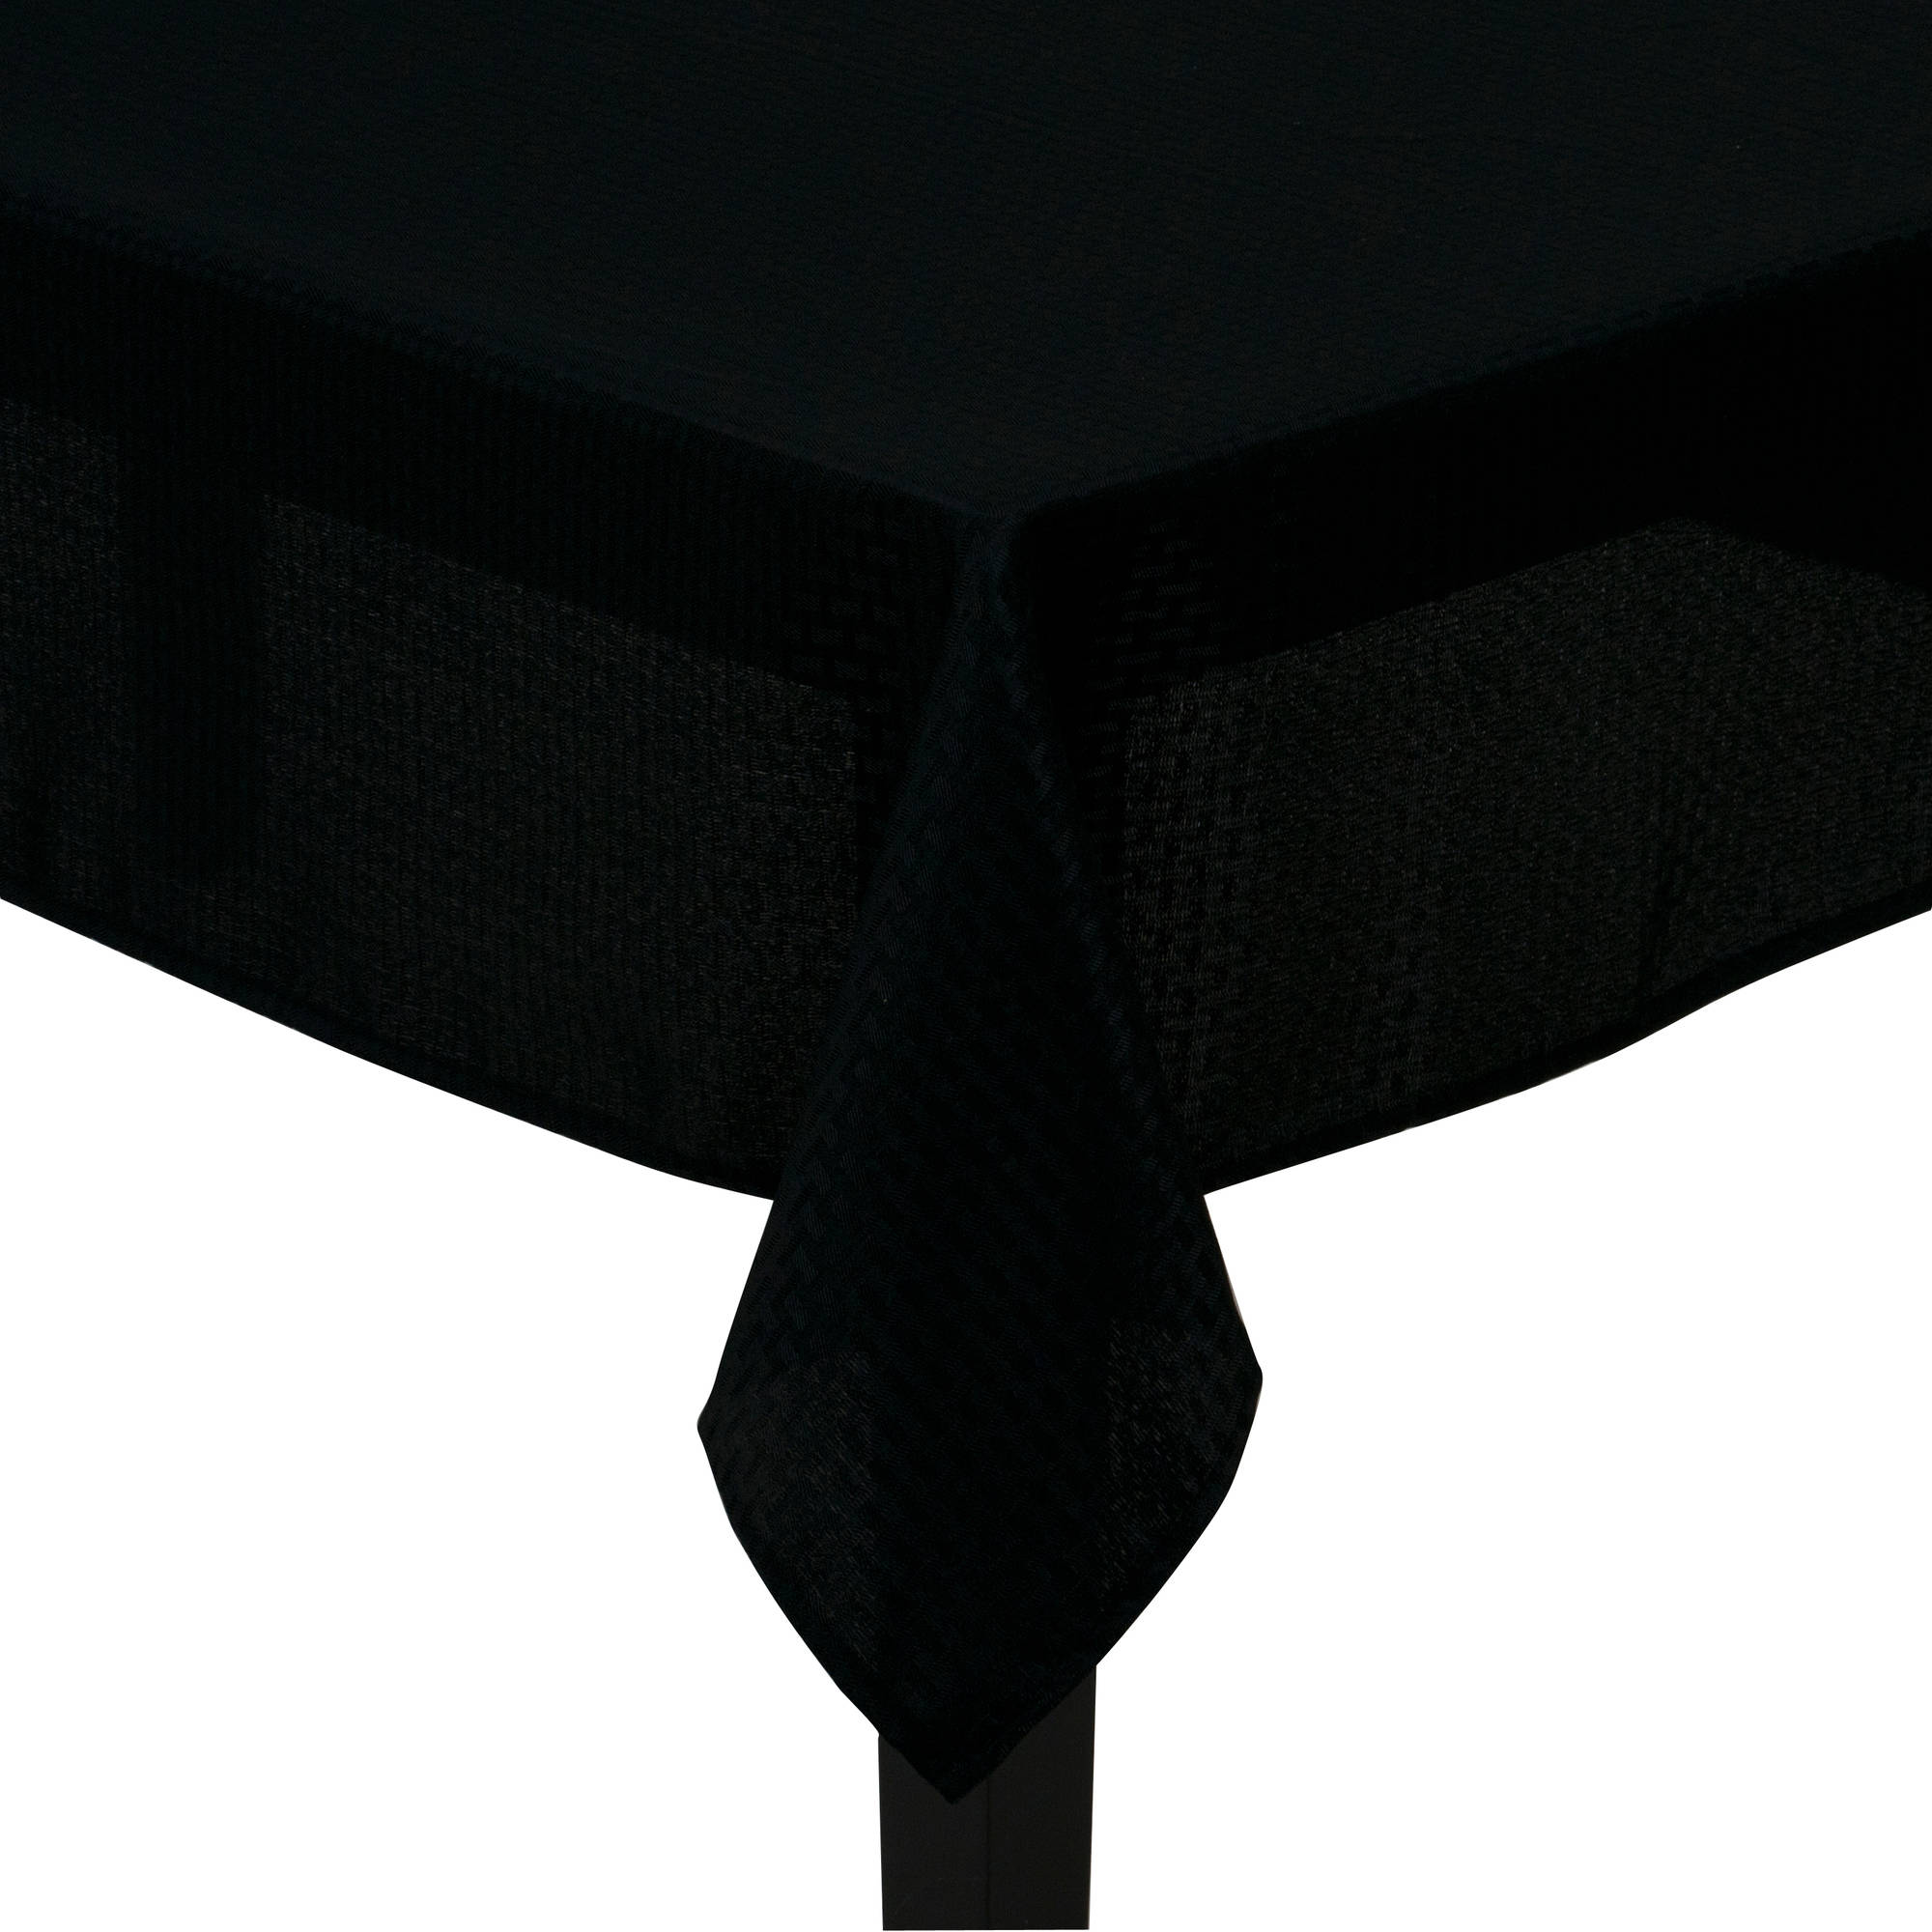 mainstays hyde fabric tablecloth black round accent table tablette white furniture elegant dining room sets acrylic console coastal bedroom decor metal desk legs meyda tiffany